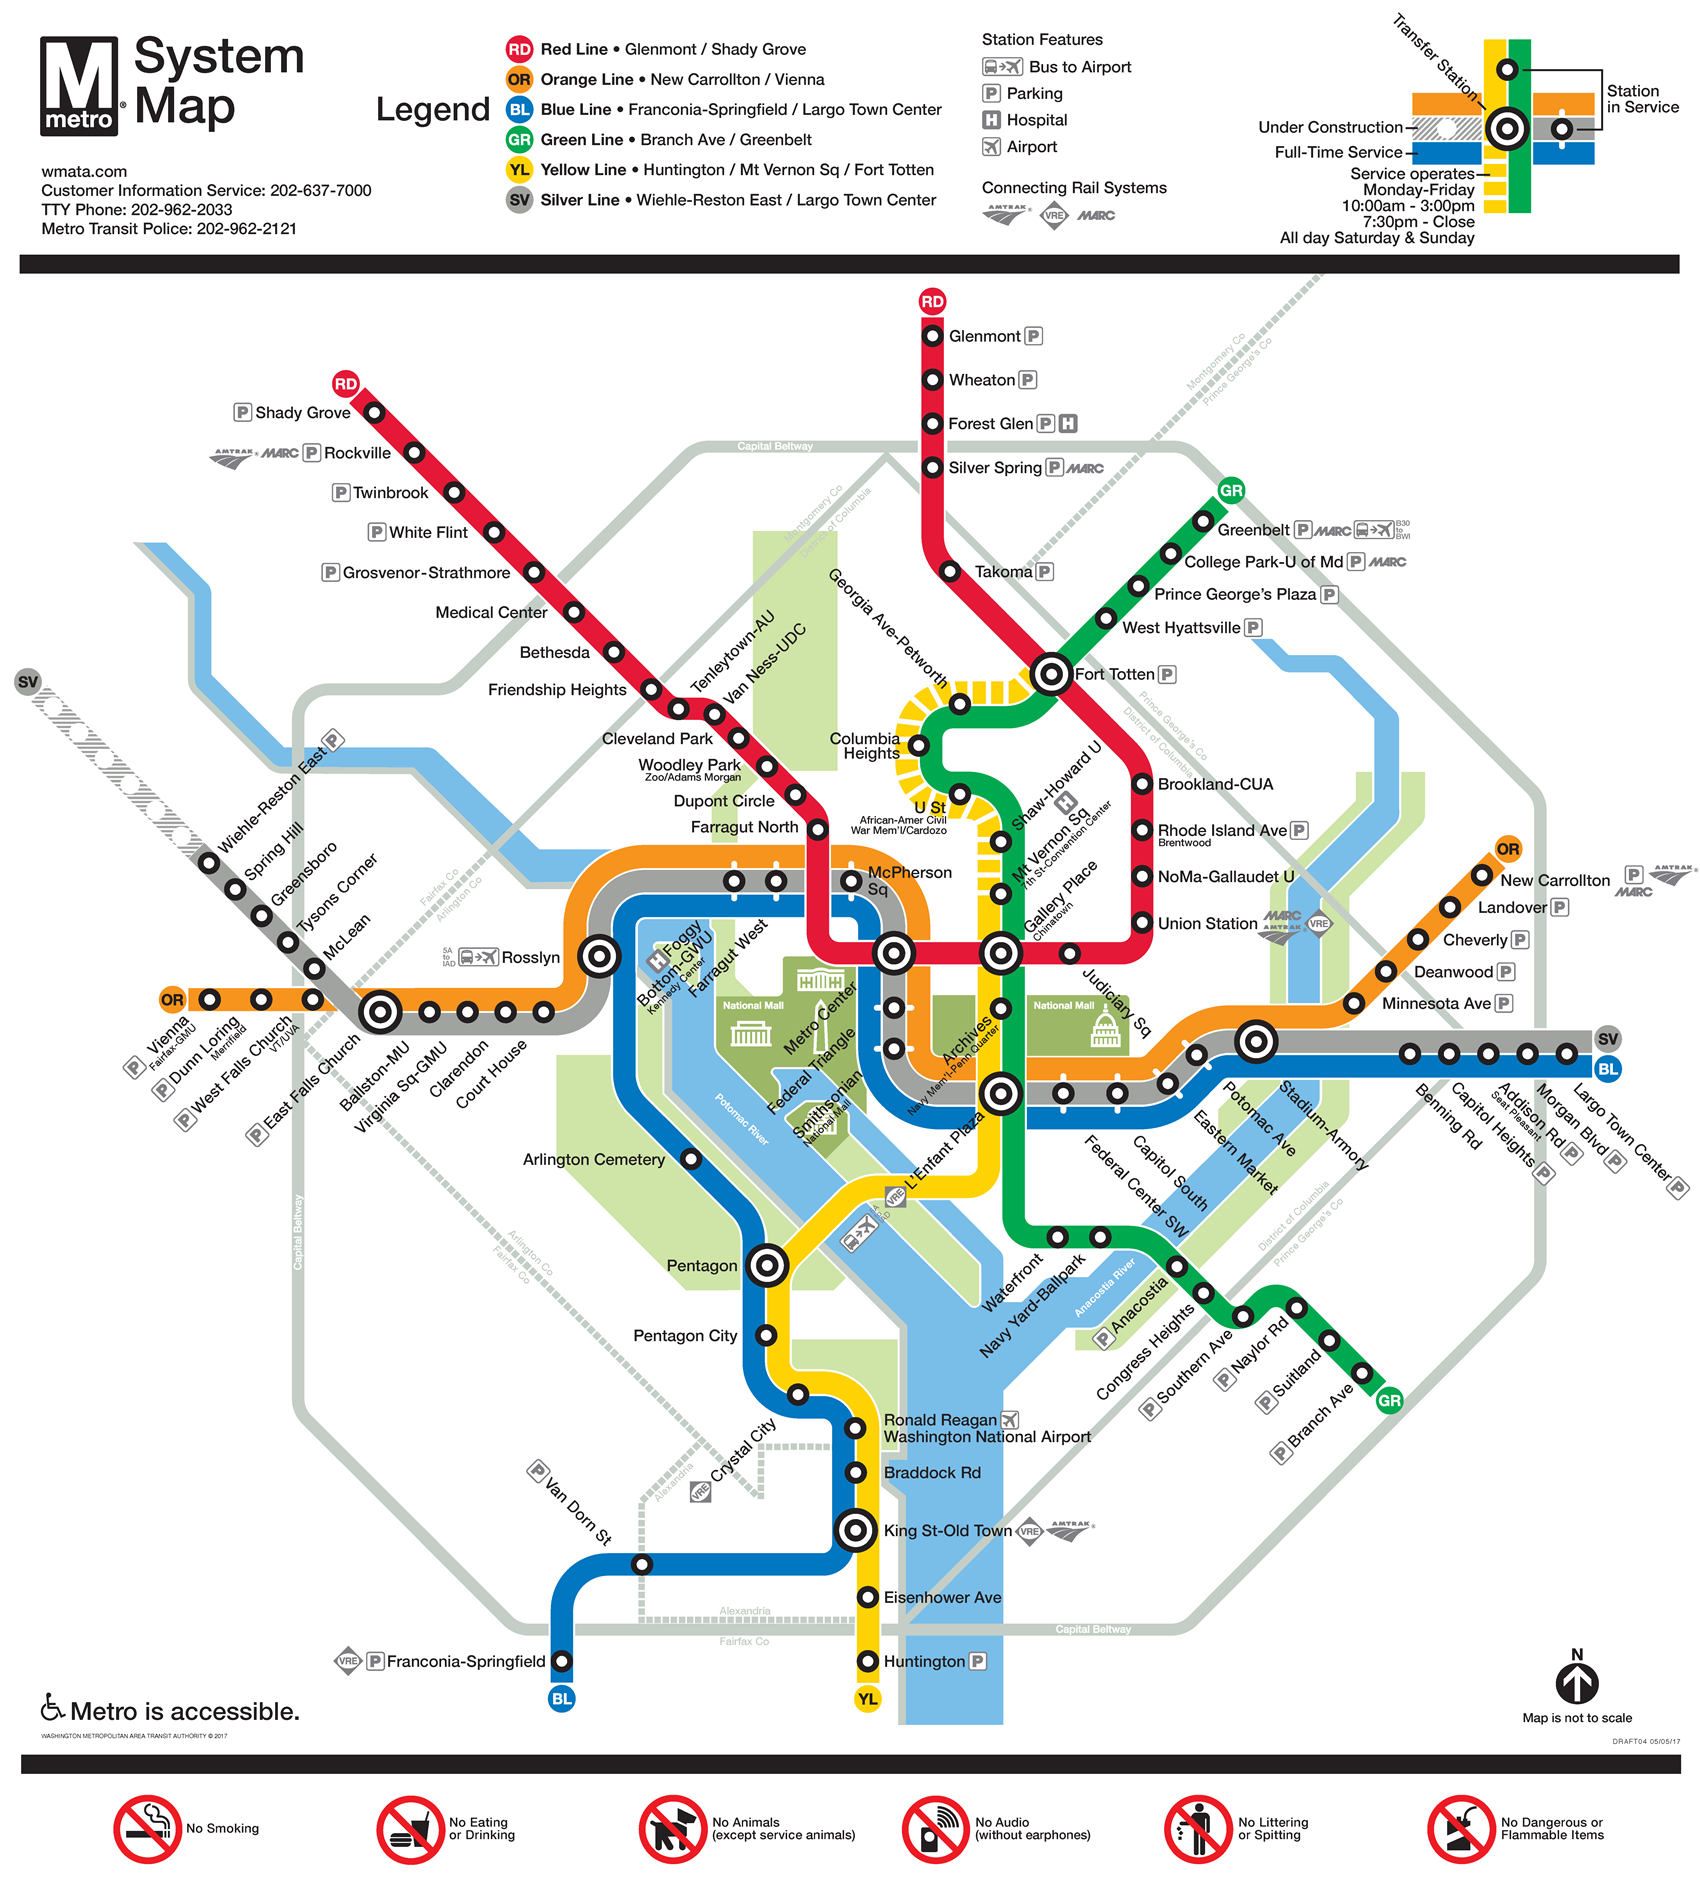 image of wmata metrorail system map